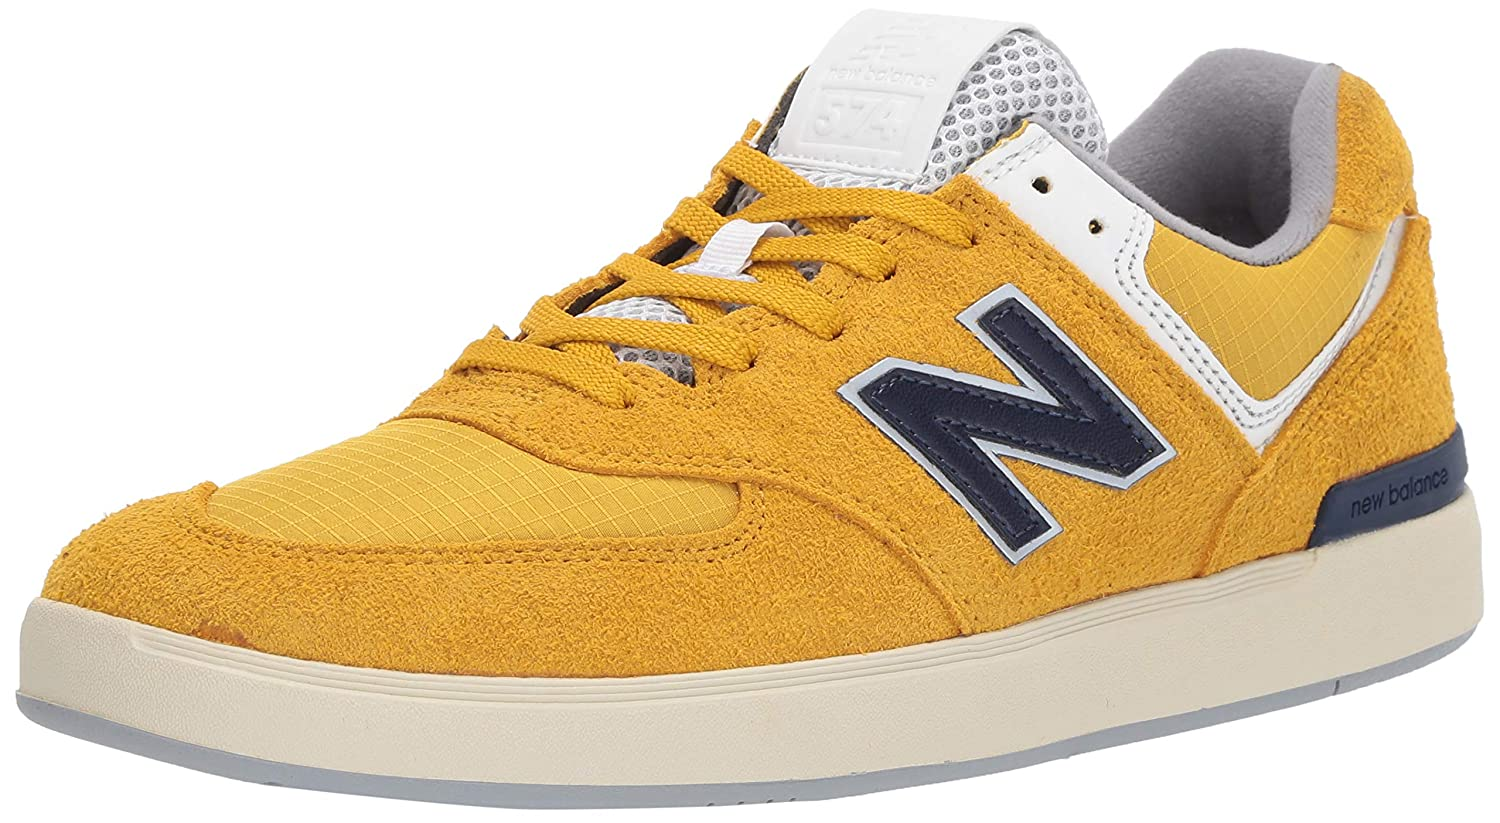 Acquista New Balance Sneakers Uomo 574 all COASTS AM574SWR miglior prezzo offerta